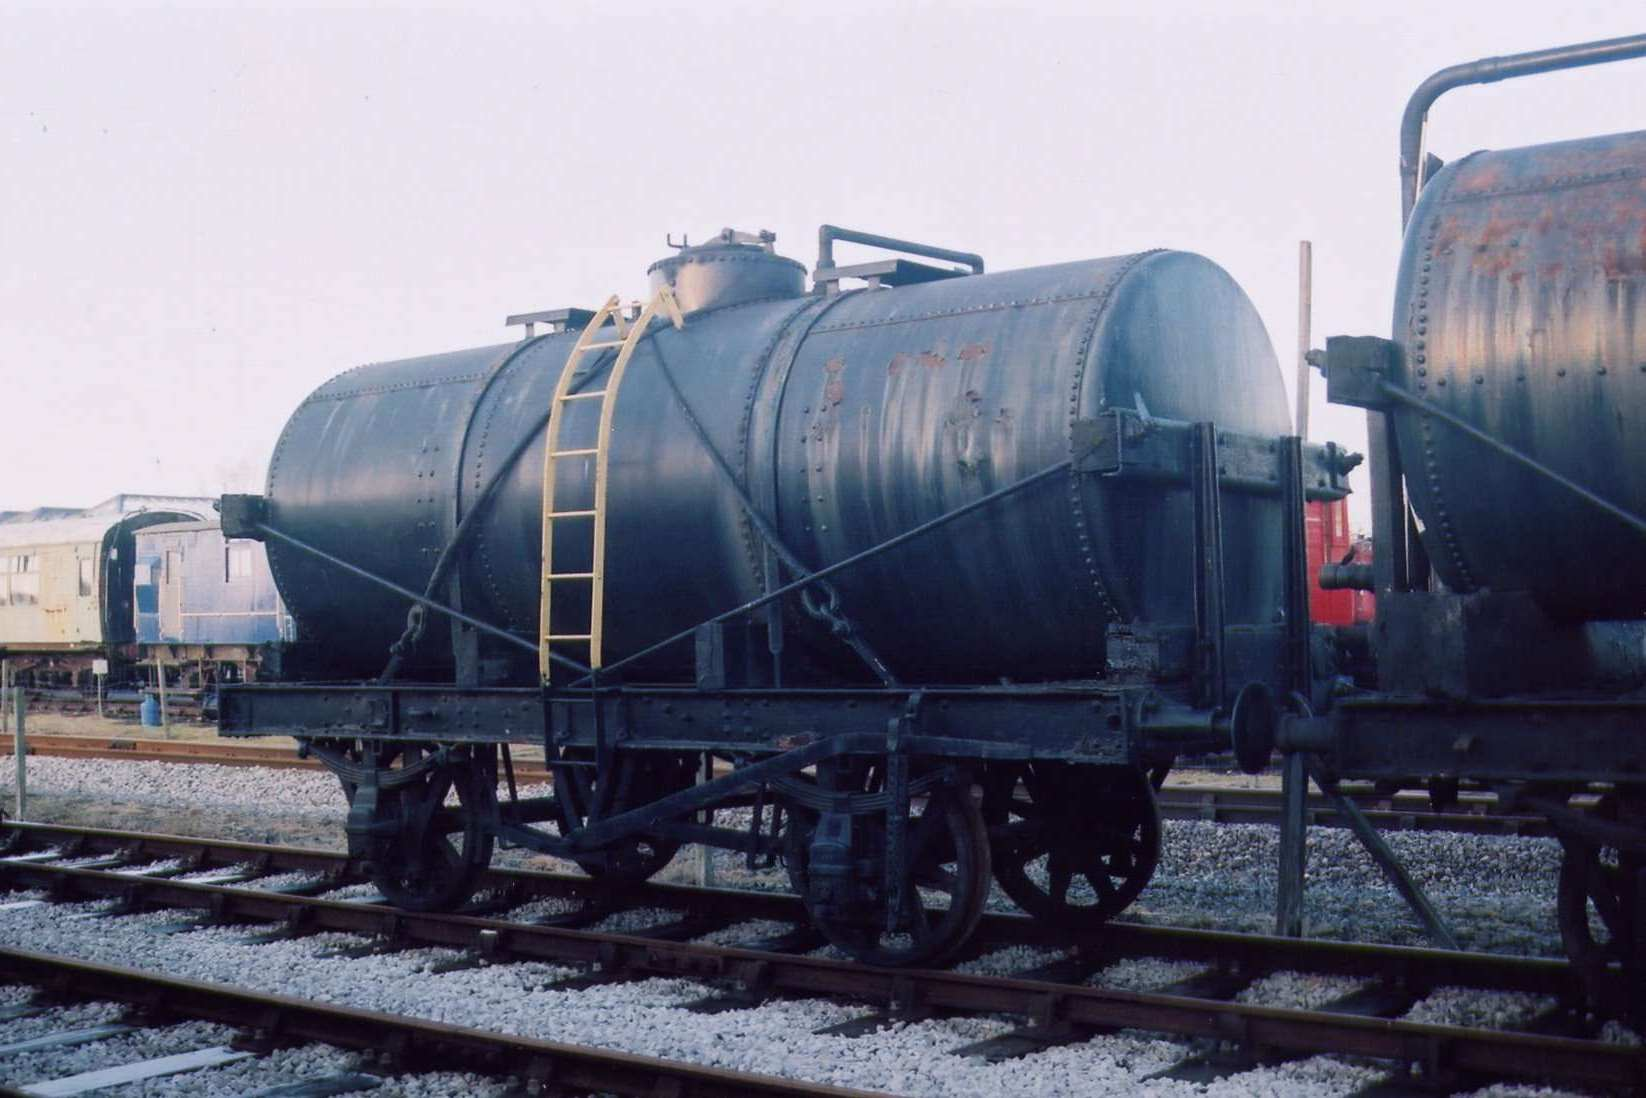 Ford's Tank Wagon